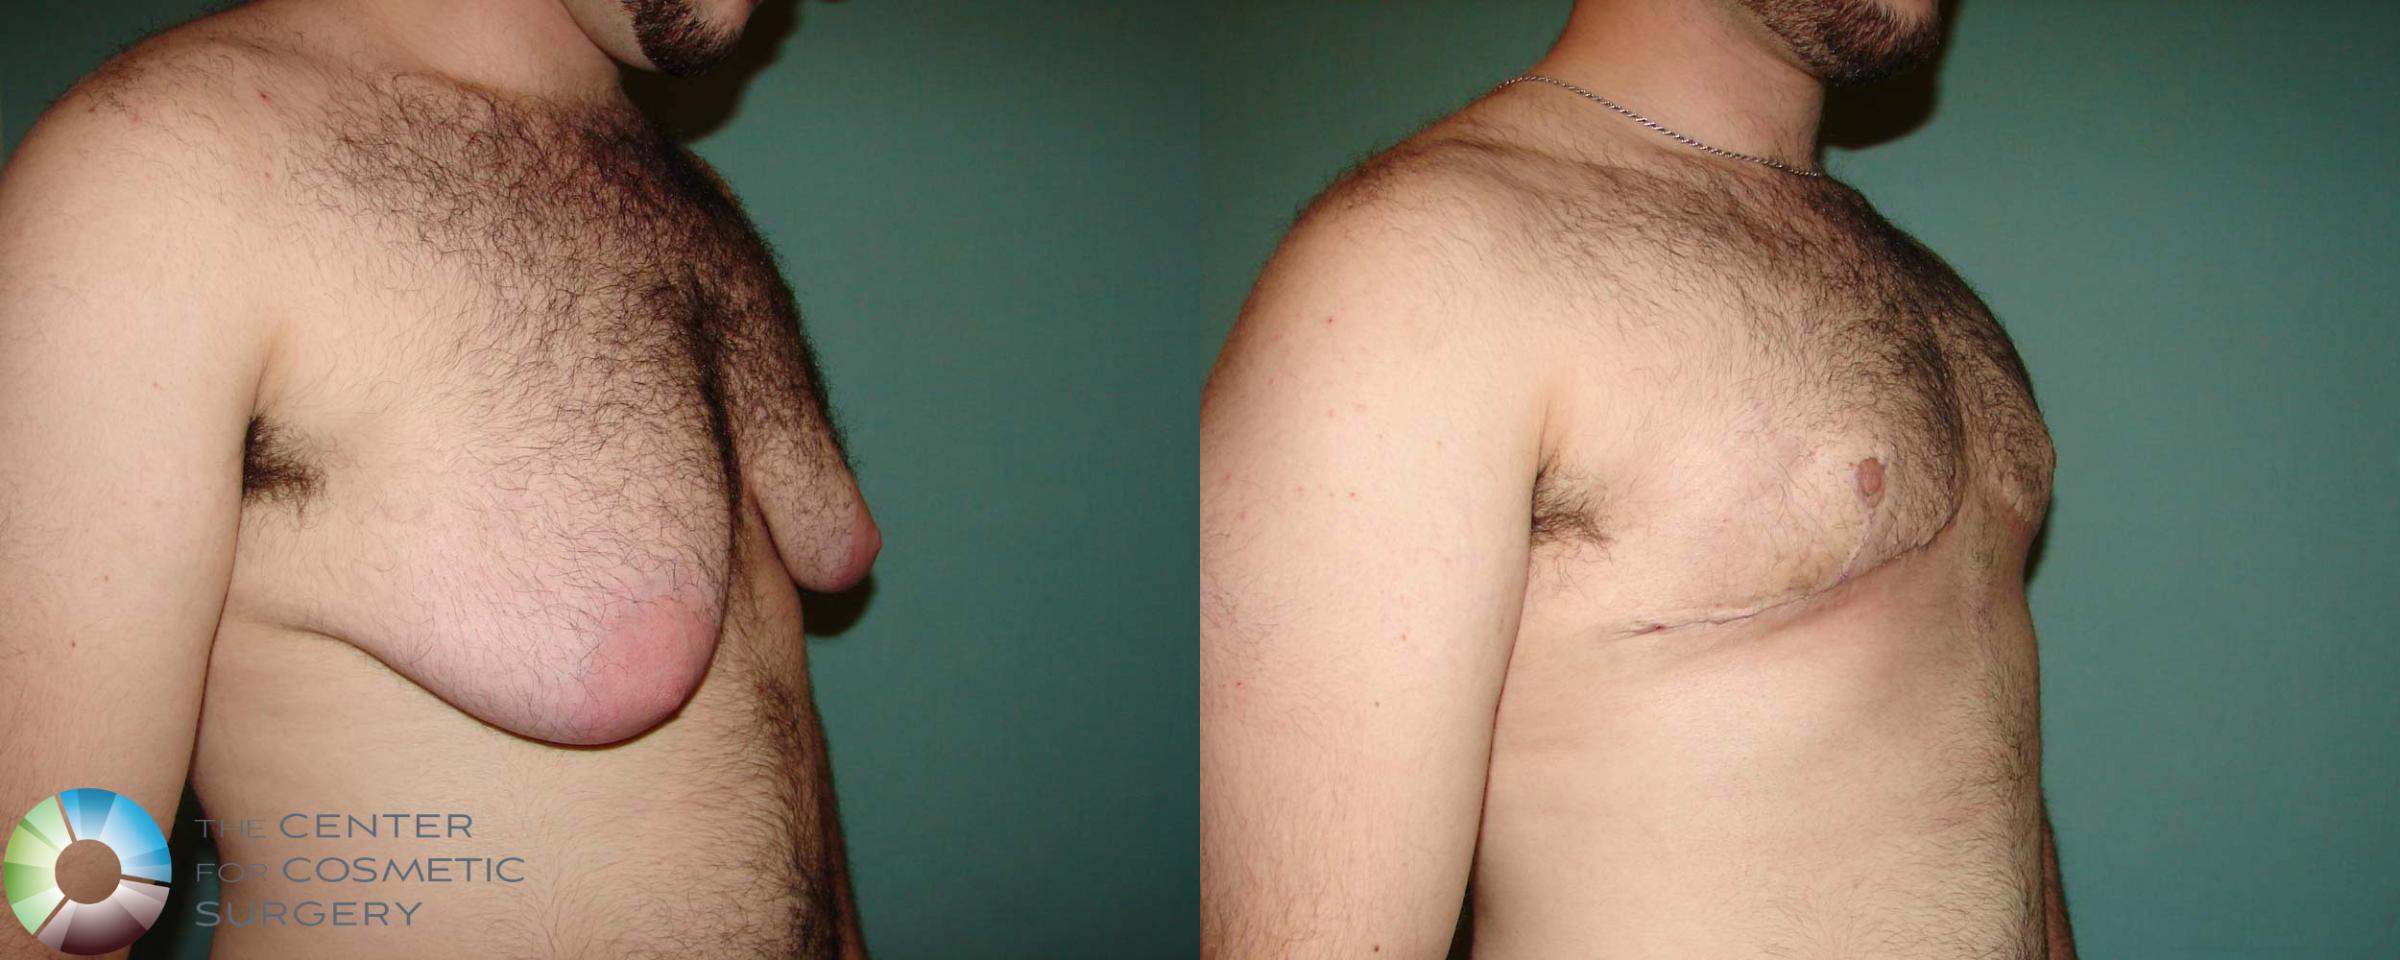 FTM Top Surgery/Chest Masculinization Case 674 Before & After View #2 | Golden, CO | The Center for Cosmetic Surgery